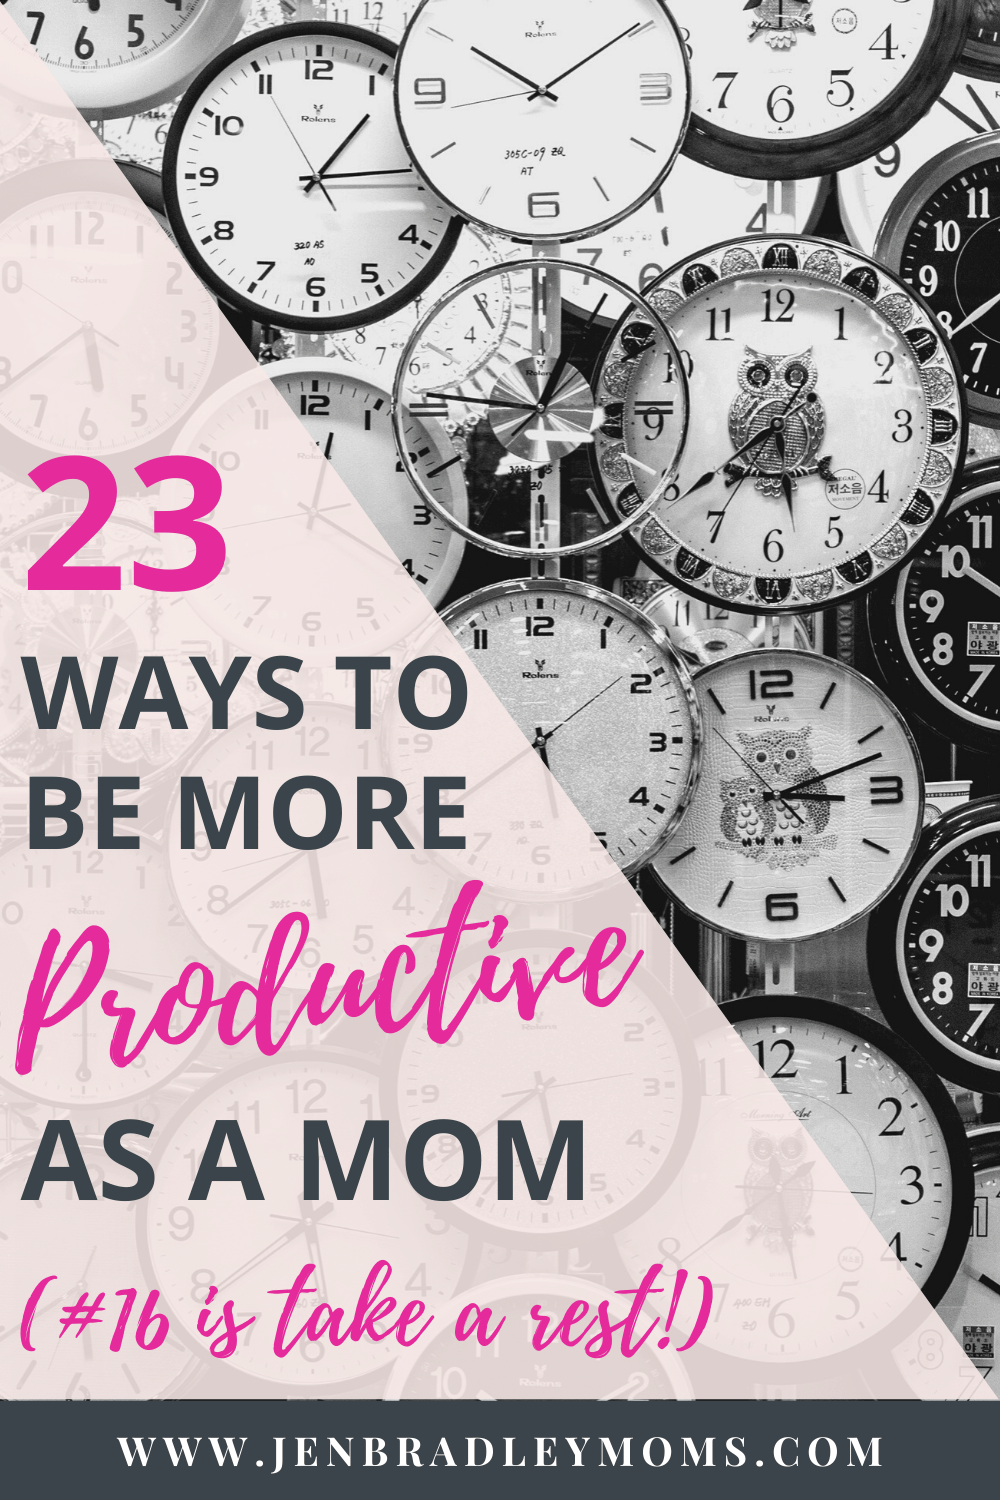 How to Be More Productive as a Mom Today